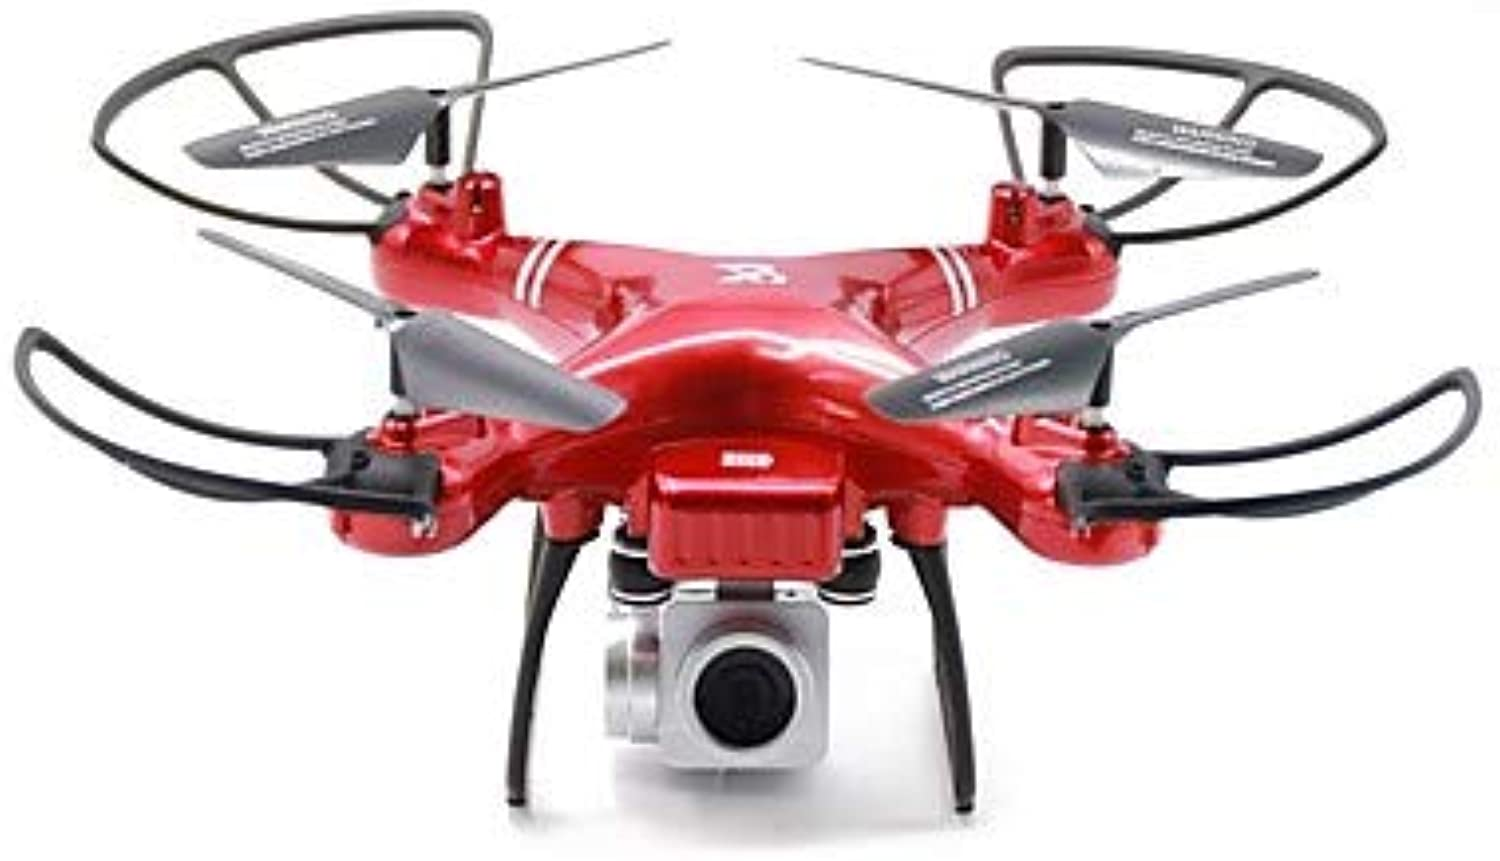 YAMEIJIA RC Drone 4CH 6 Axis 2.4G Mit HD Camera 2.0MP 720P RC Quadcopter One Key to Auto-Return Headless Mode 360°Rolling RC